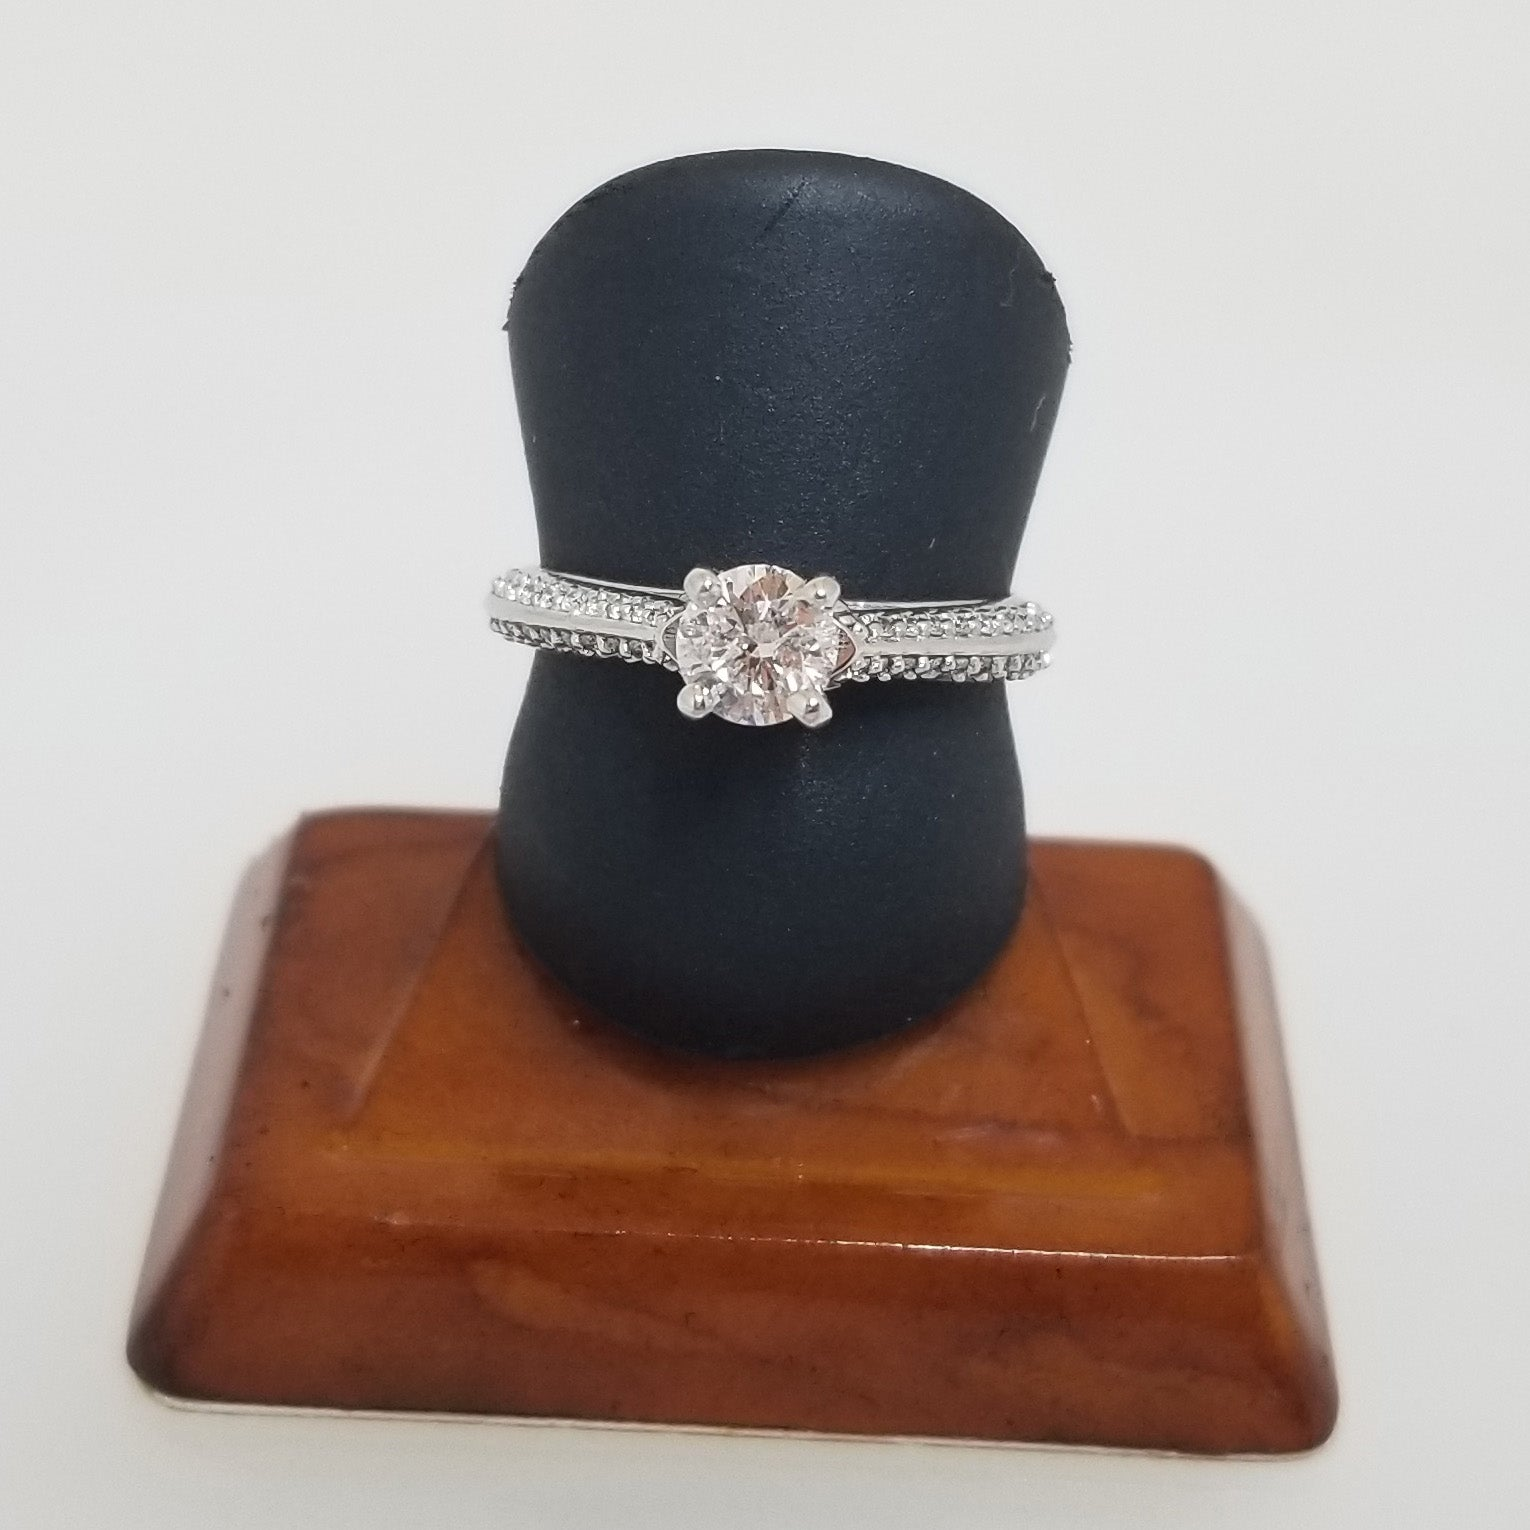 Ready To Ship Diamond engagement ring with knife edge shank in 14k white gold